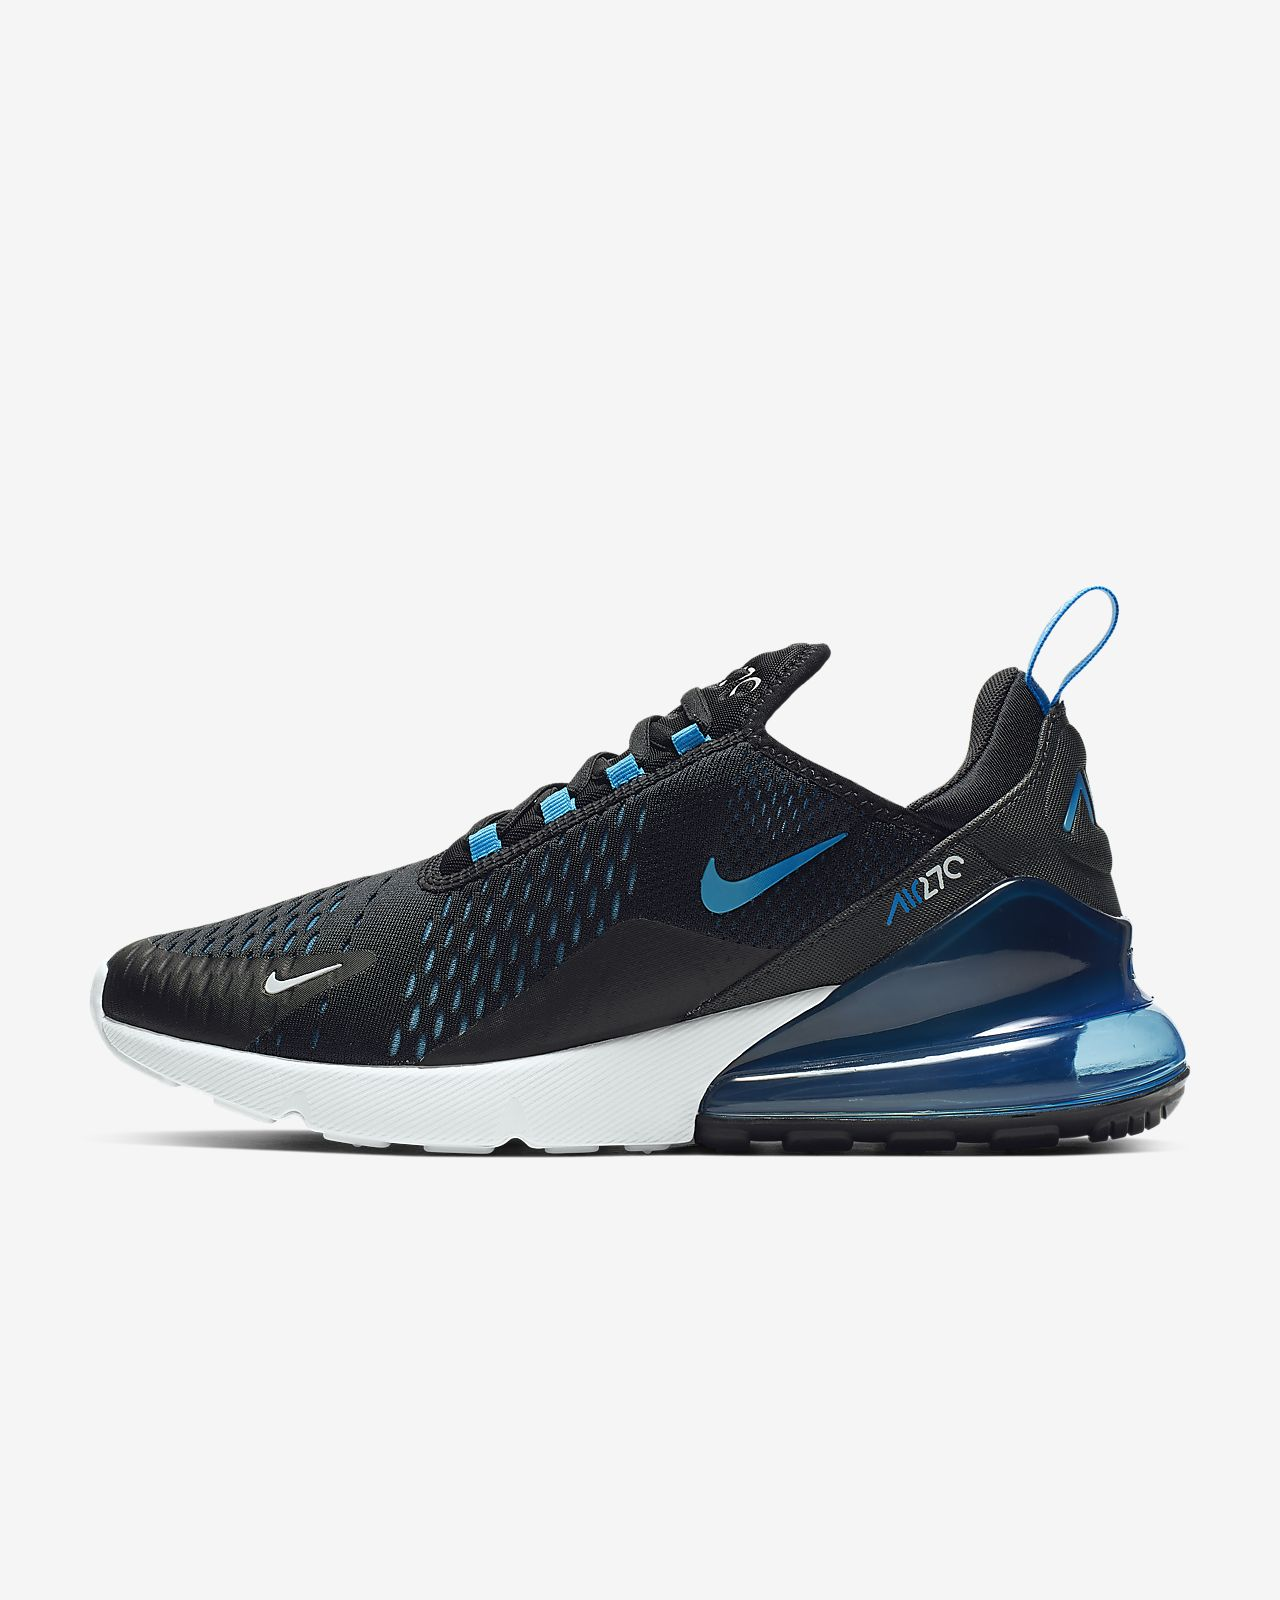 cheaper 61cee 6f0c0 Nike Air Max 270